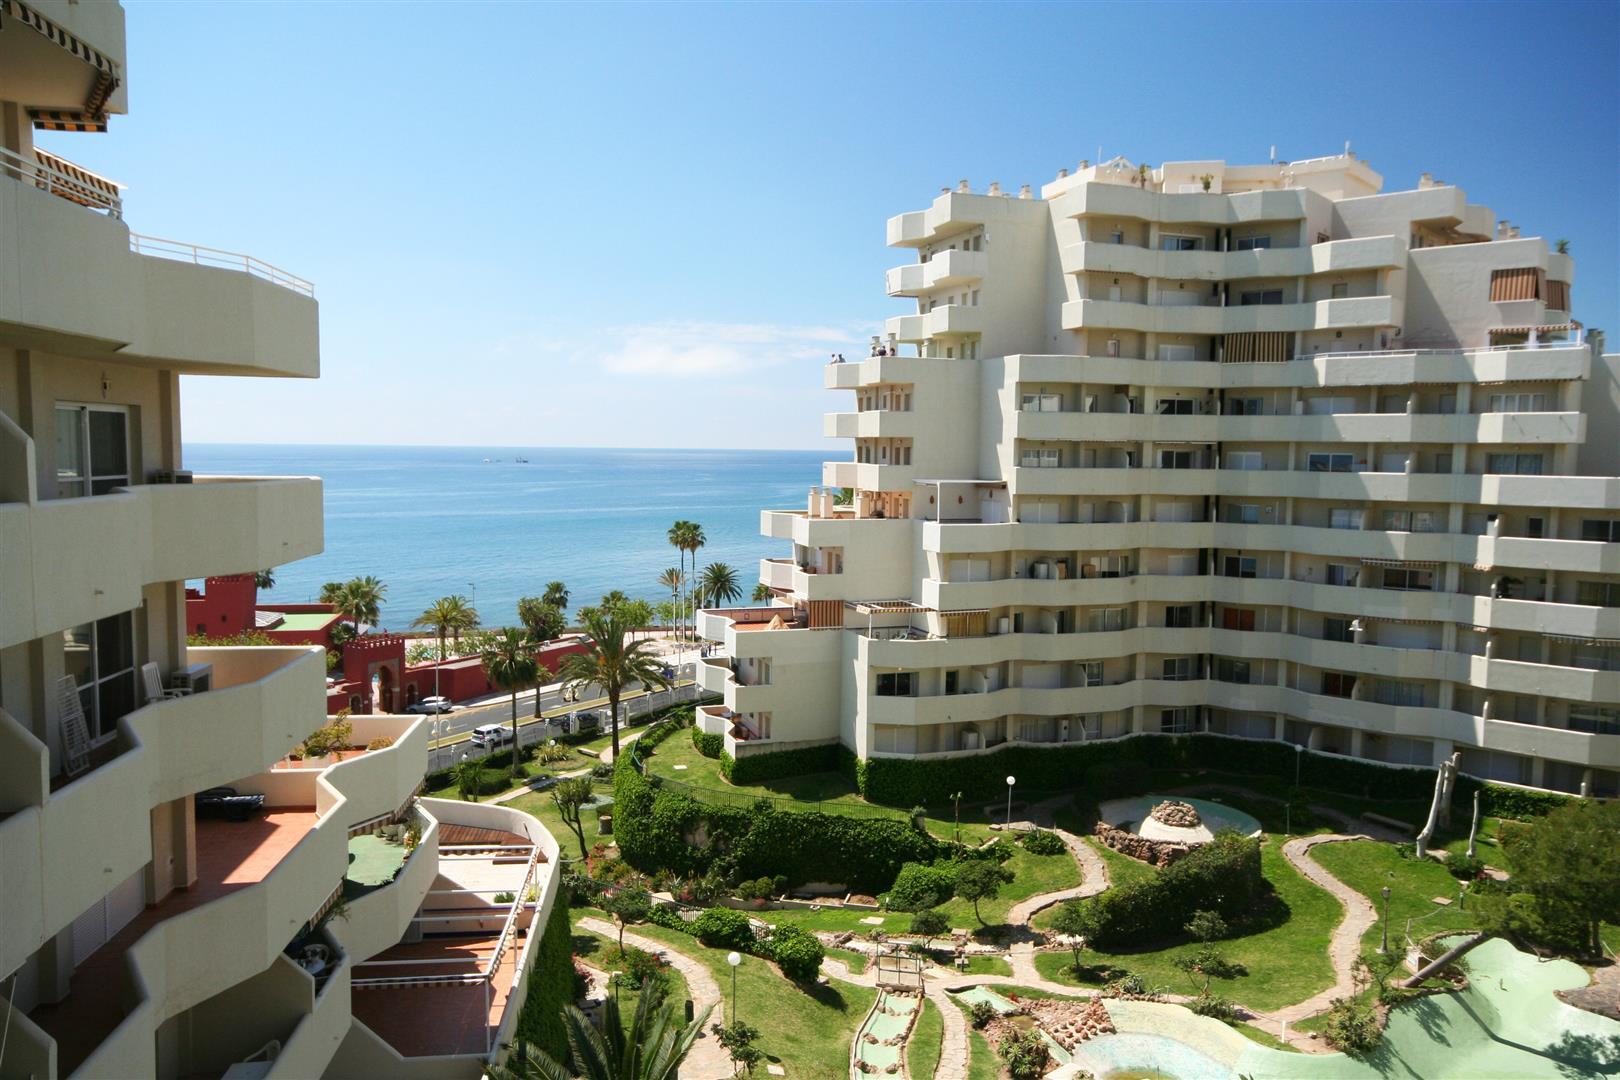 studio suite for sale in Benalbeach 9